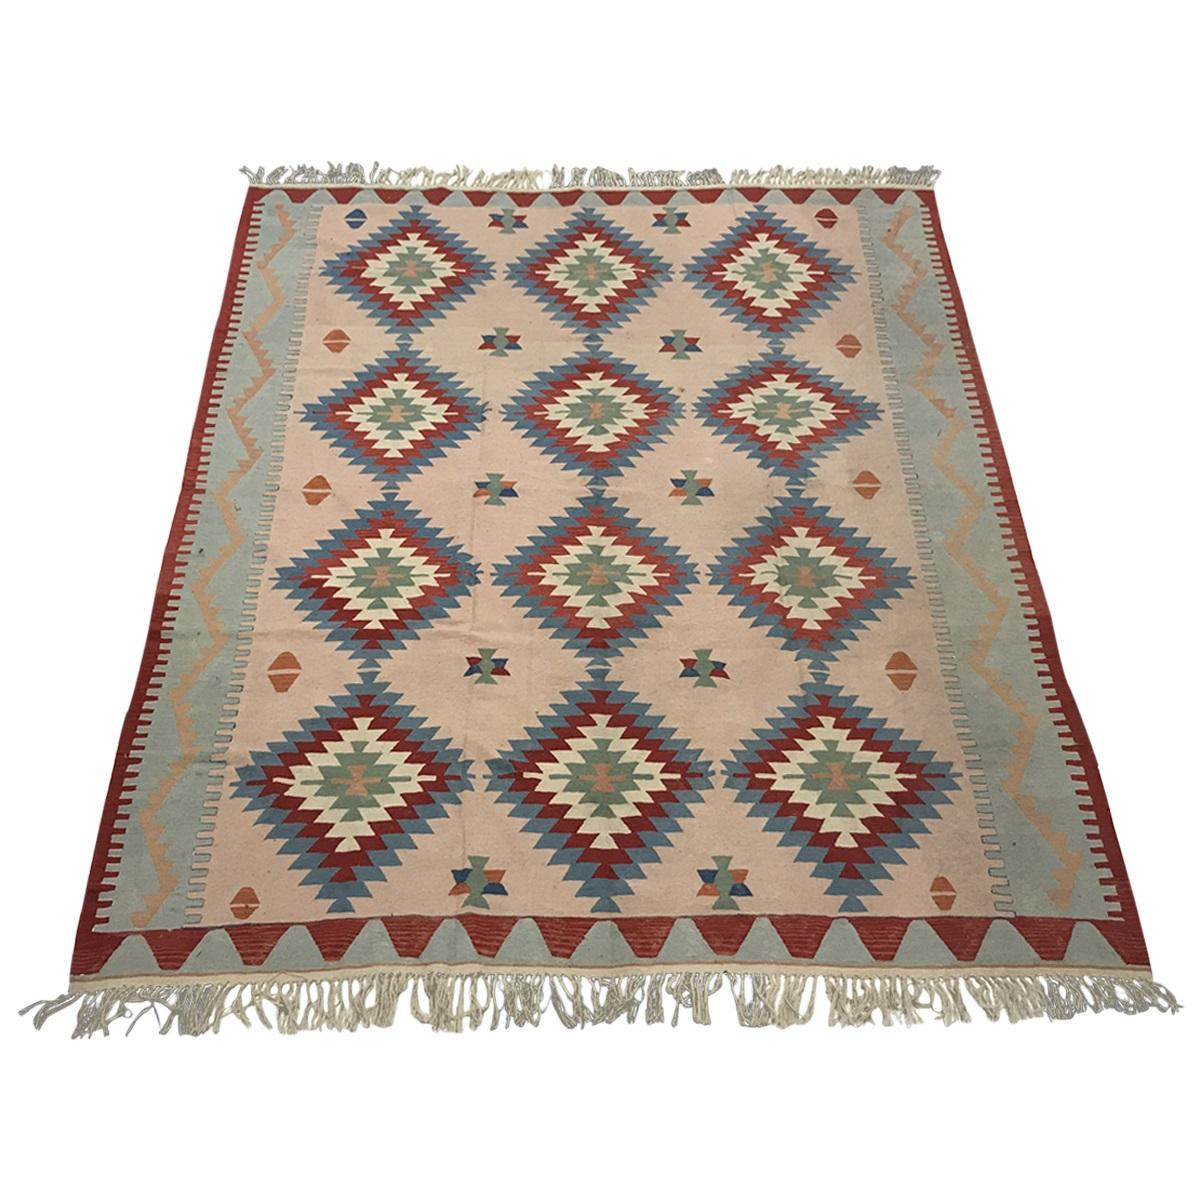 1970 Turkish Wool Ghelim One-of-a Kind Vintage and Antique Rug